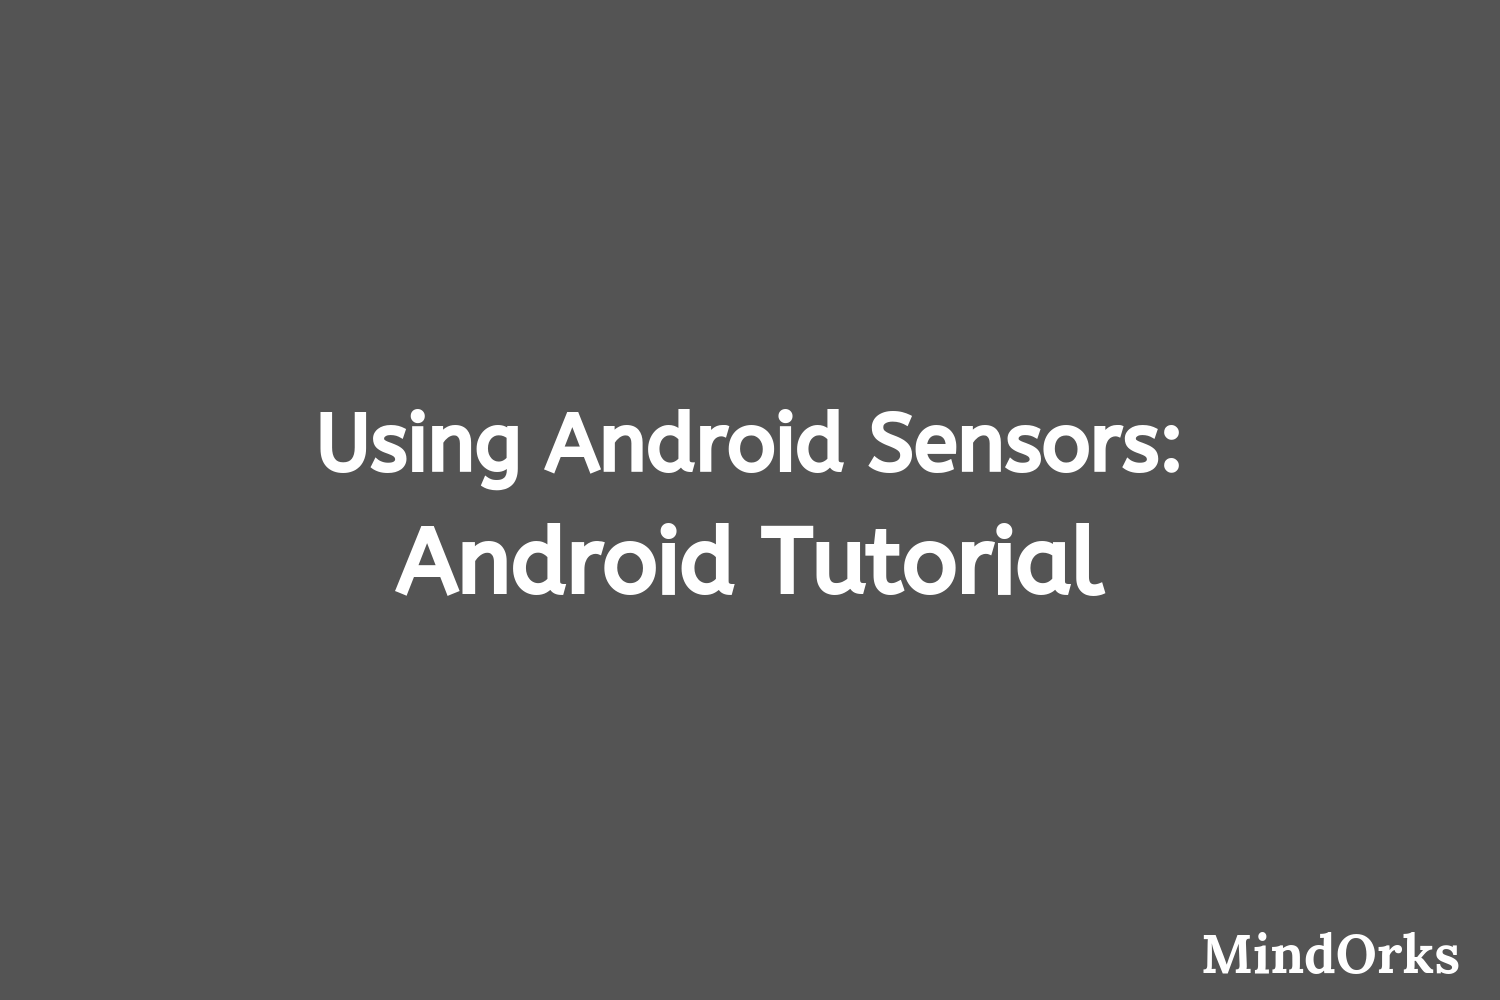 Using Android Sensors: Android Tutorial